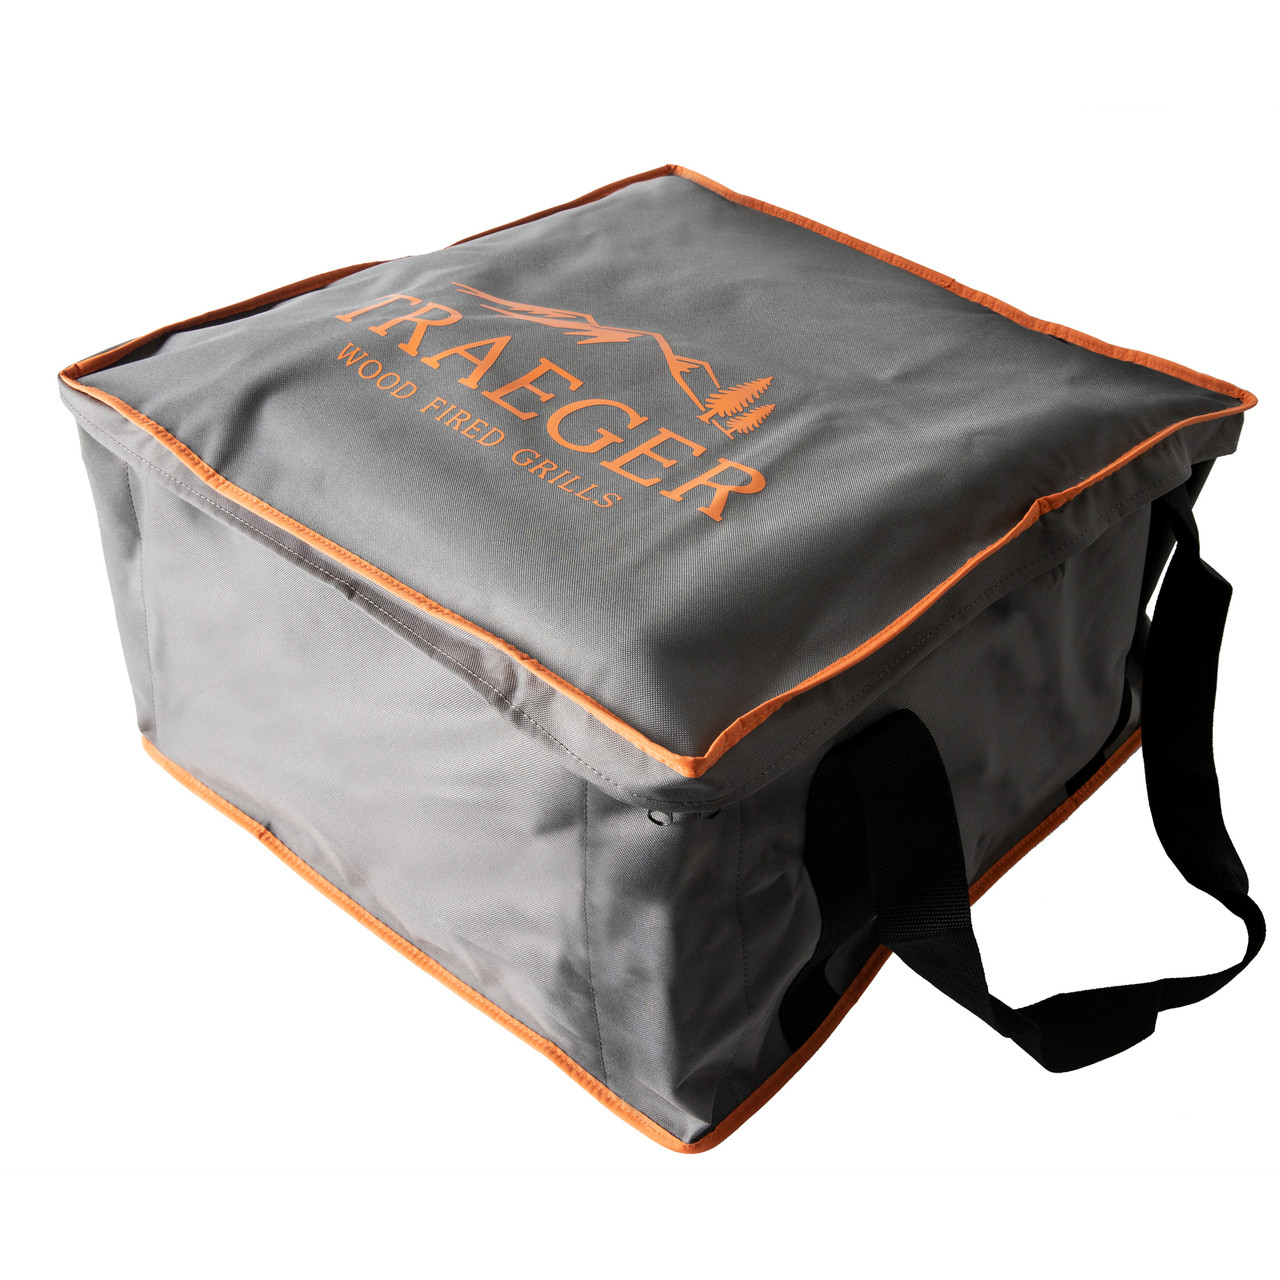 TRAEGER PELLET GRILLS GENUINE ACCESSORY - RANGER &  SCOUT TO GO BAG CARRY CASE BAC502